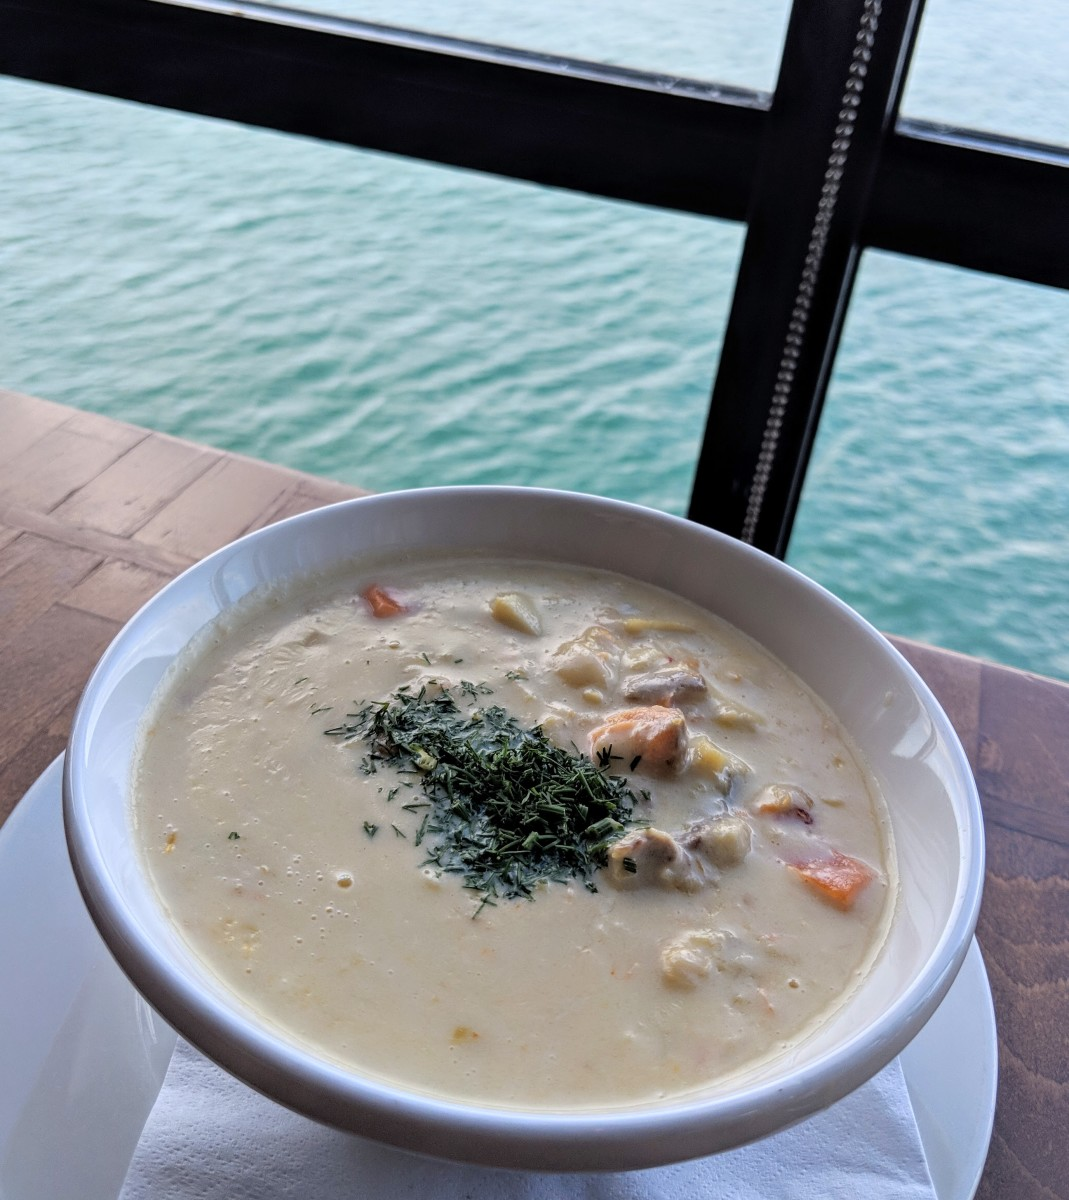 From sea to plate, seafood chowder at Aqua Restaurant